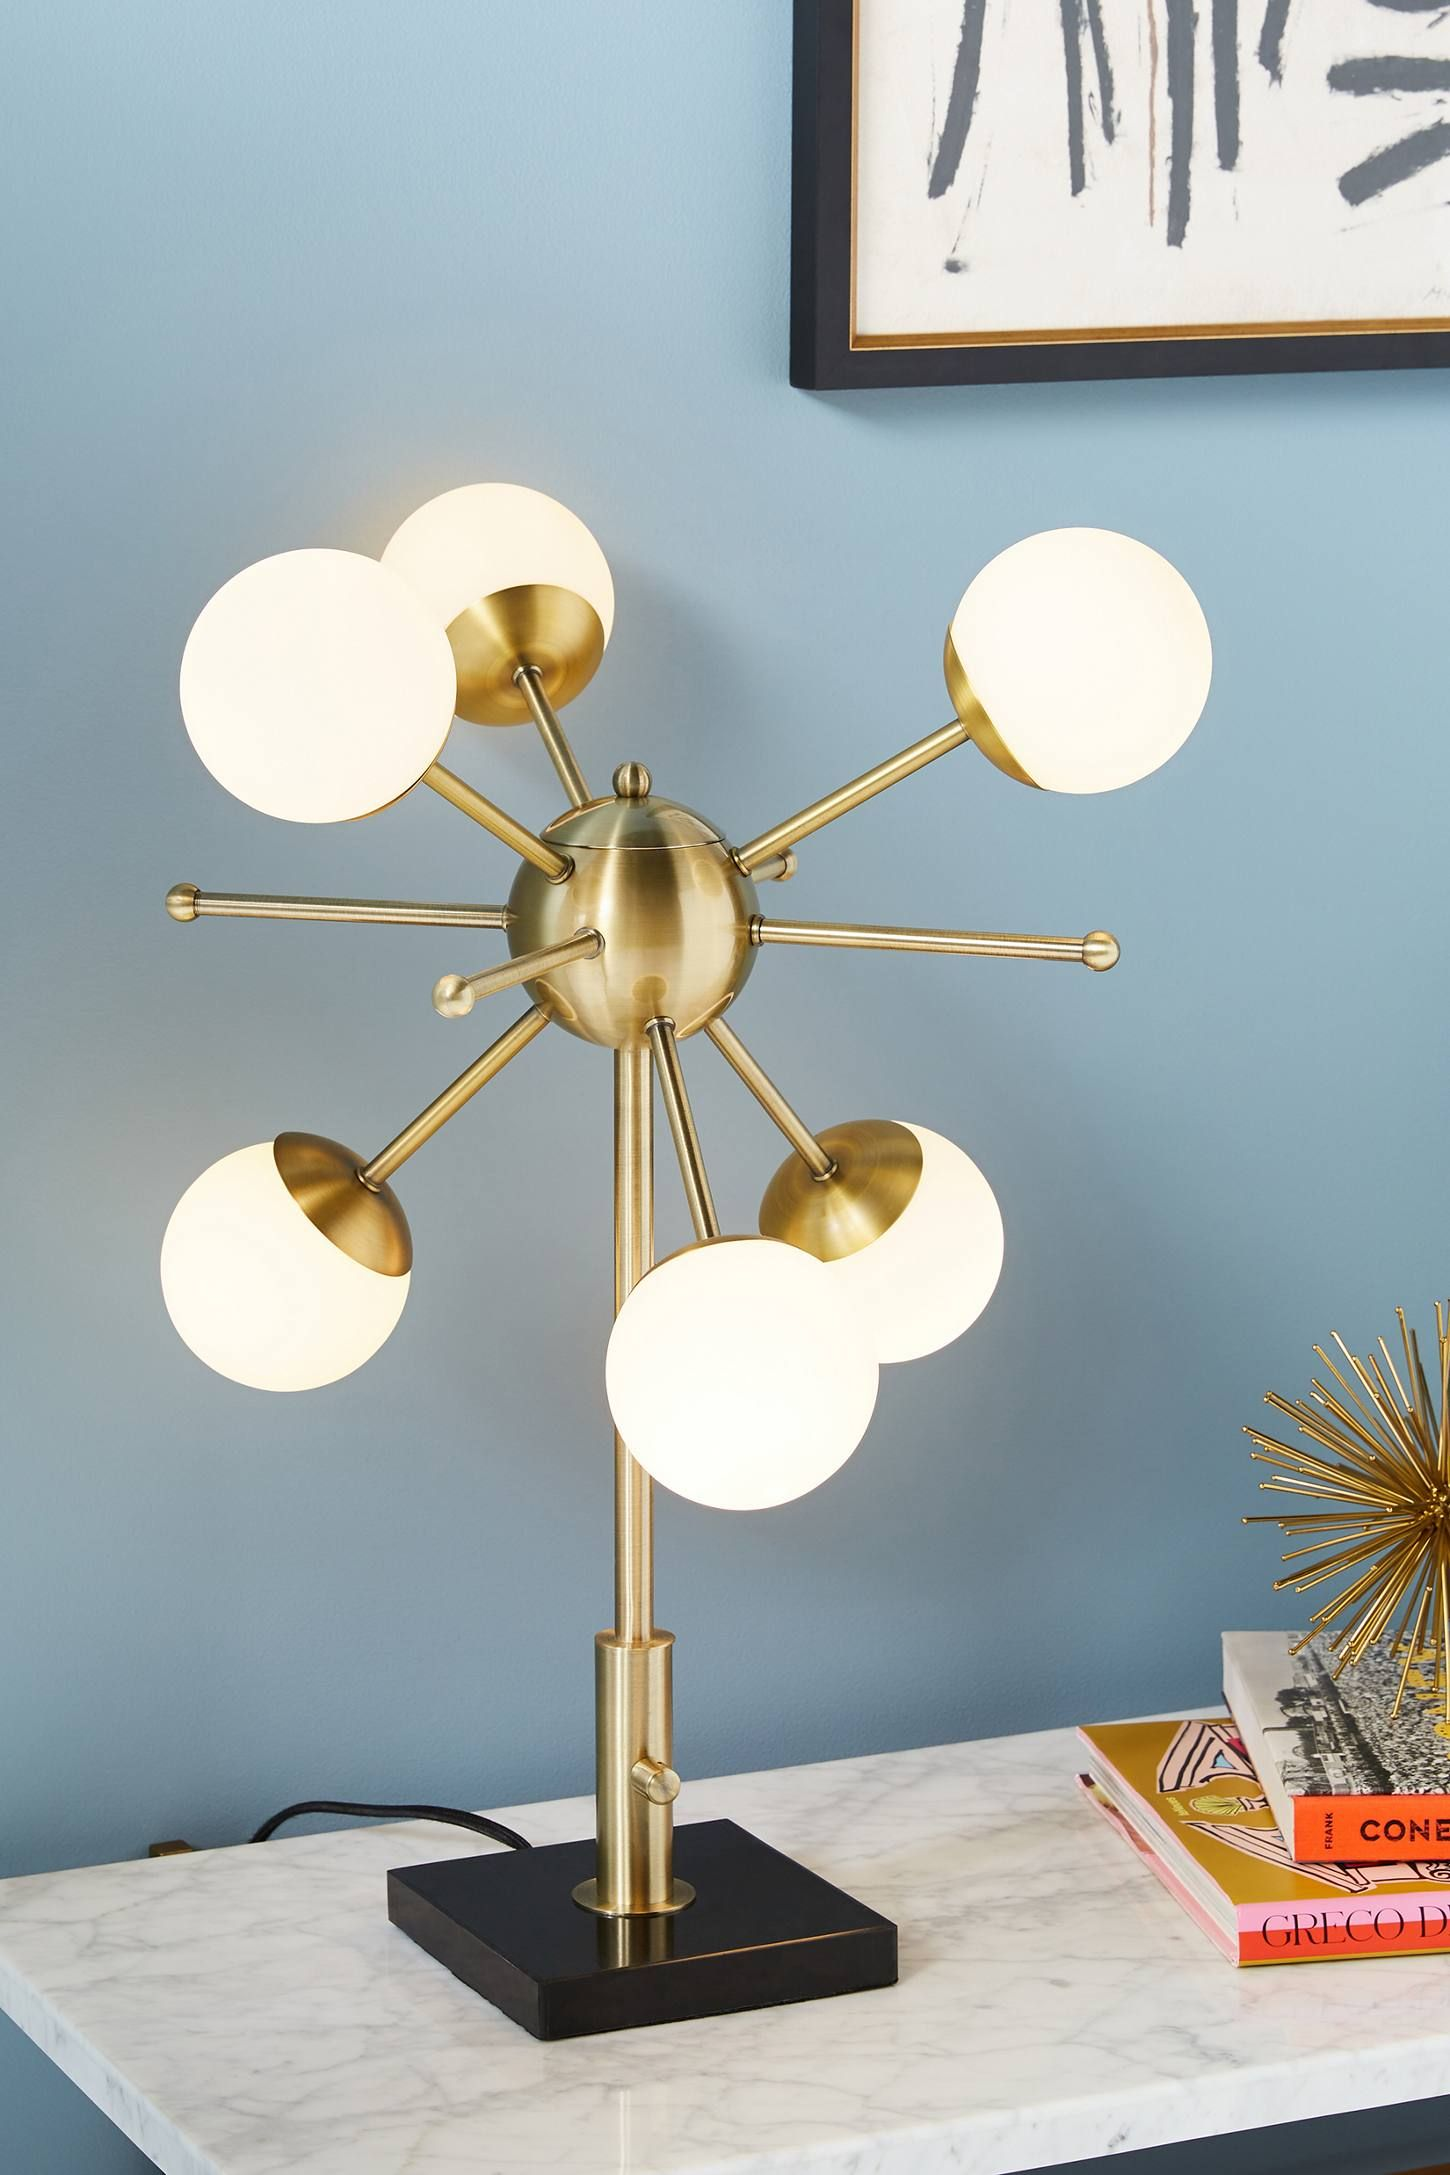 25 Modern Nightstand Lamps For Bedroom Bedside Table Lamps